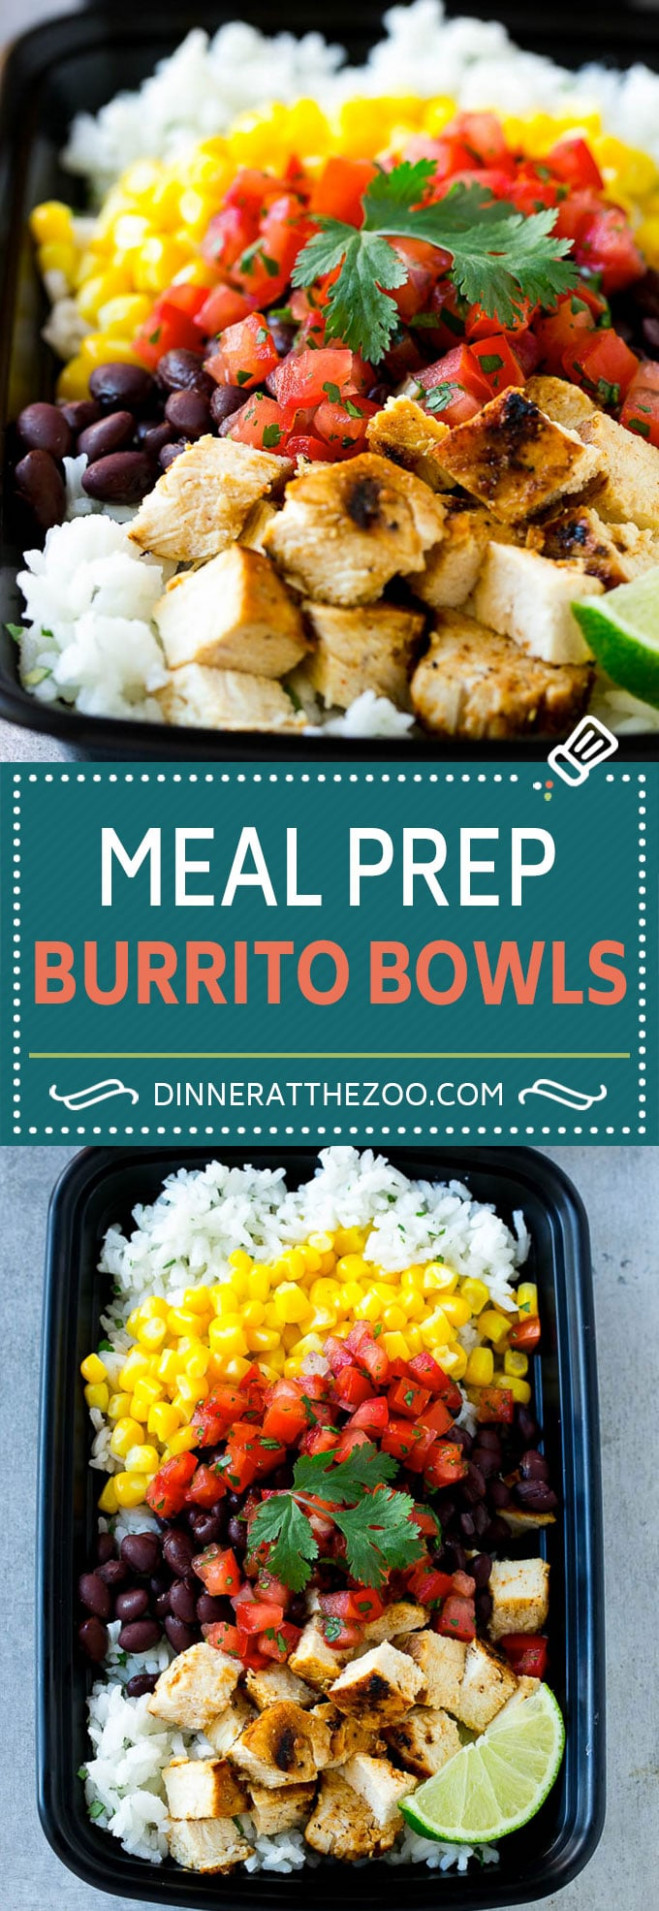 15 Easy Meal Prep Recipes - Dinner at the Zoo - recipes easy dinner healthy